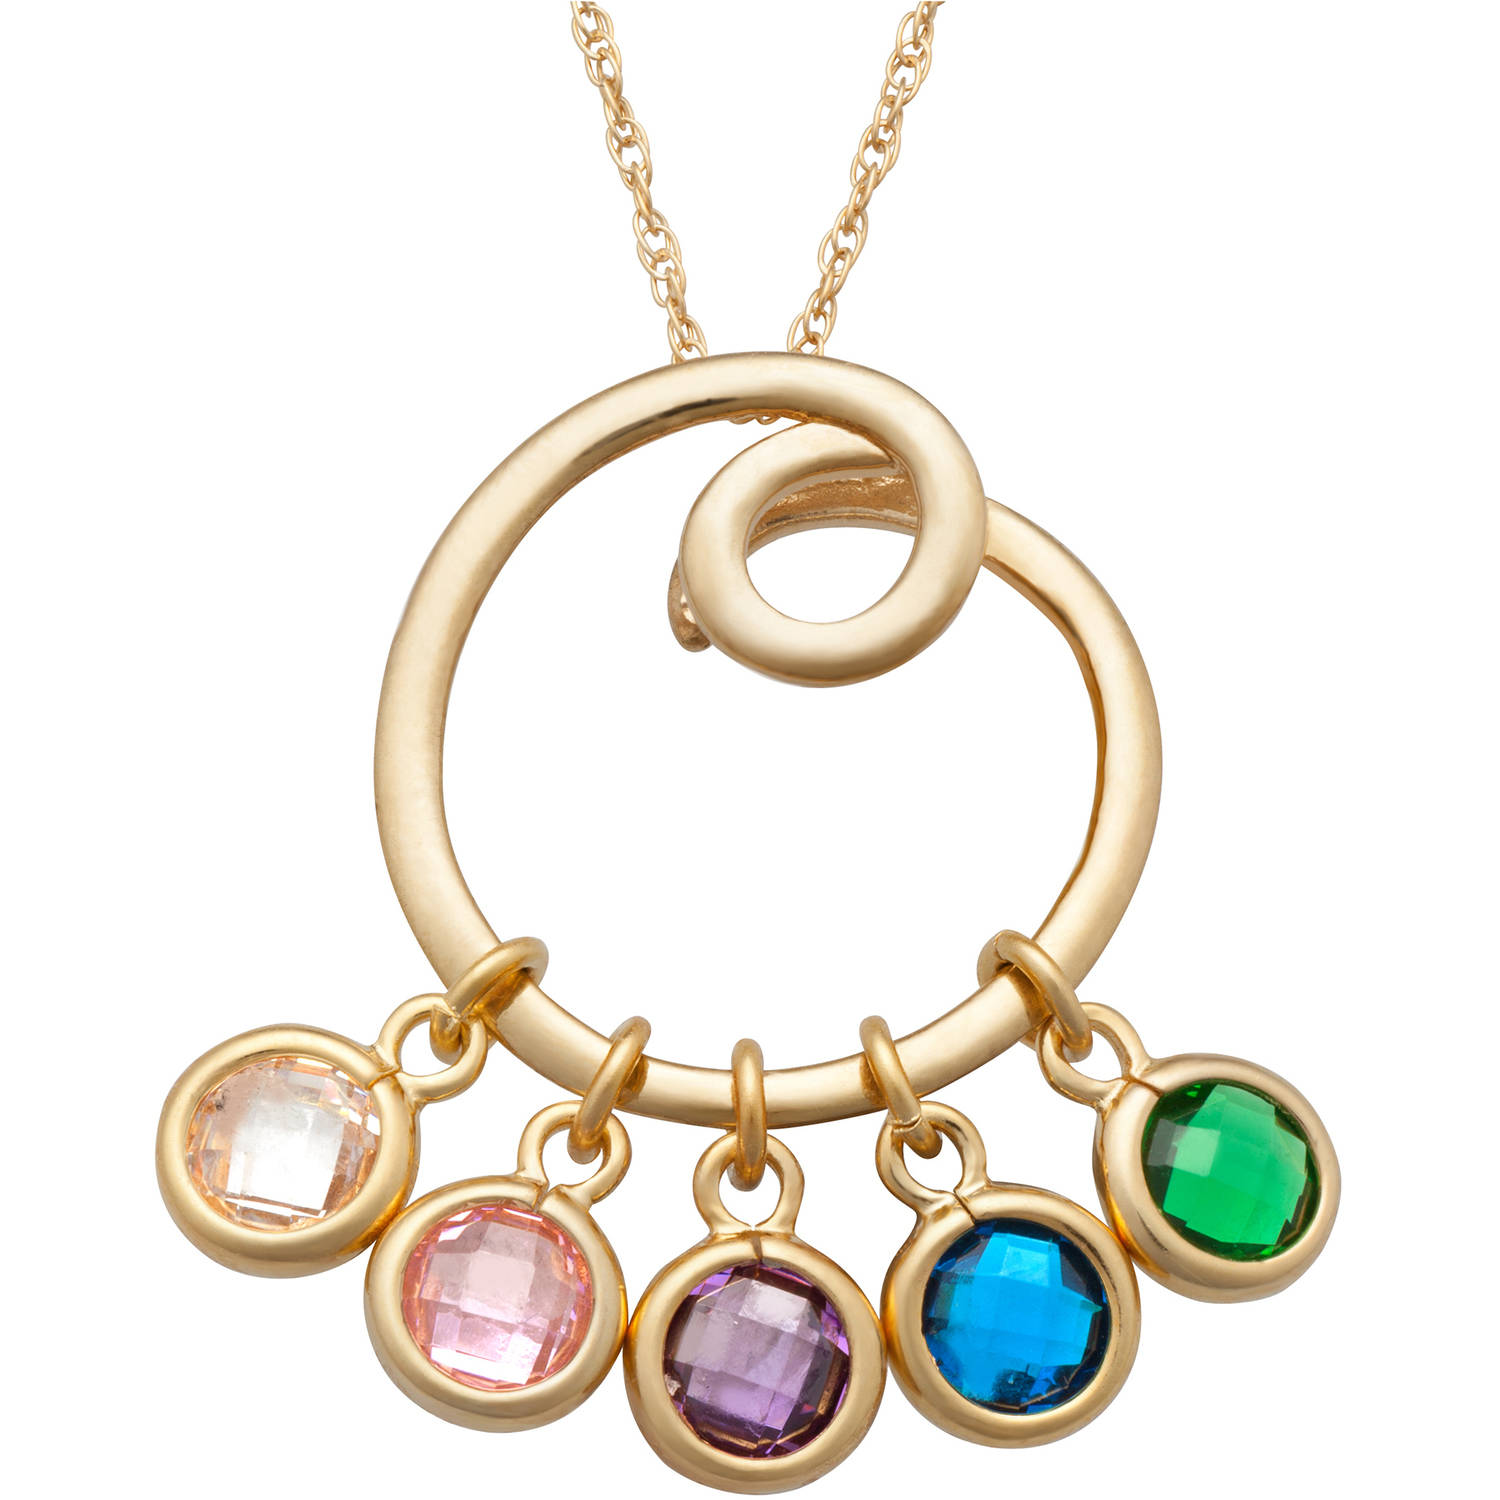 Family Jewelry Personalized Mother's Gold over Silver Swirl Slider Birthstone Necklace